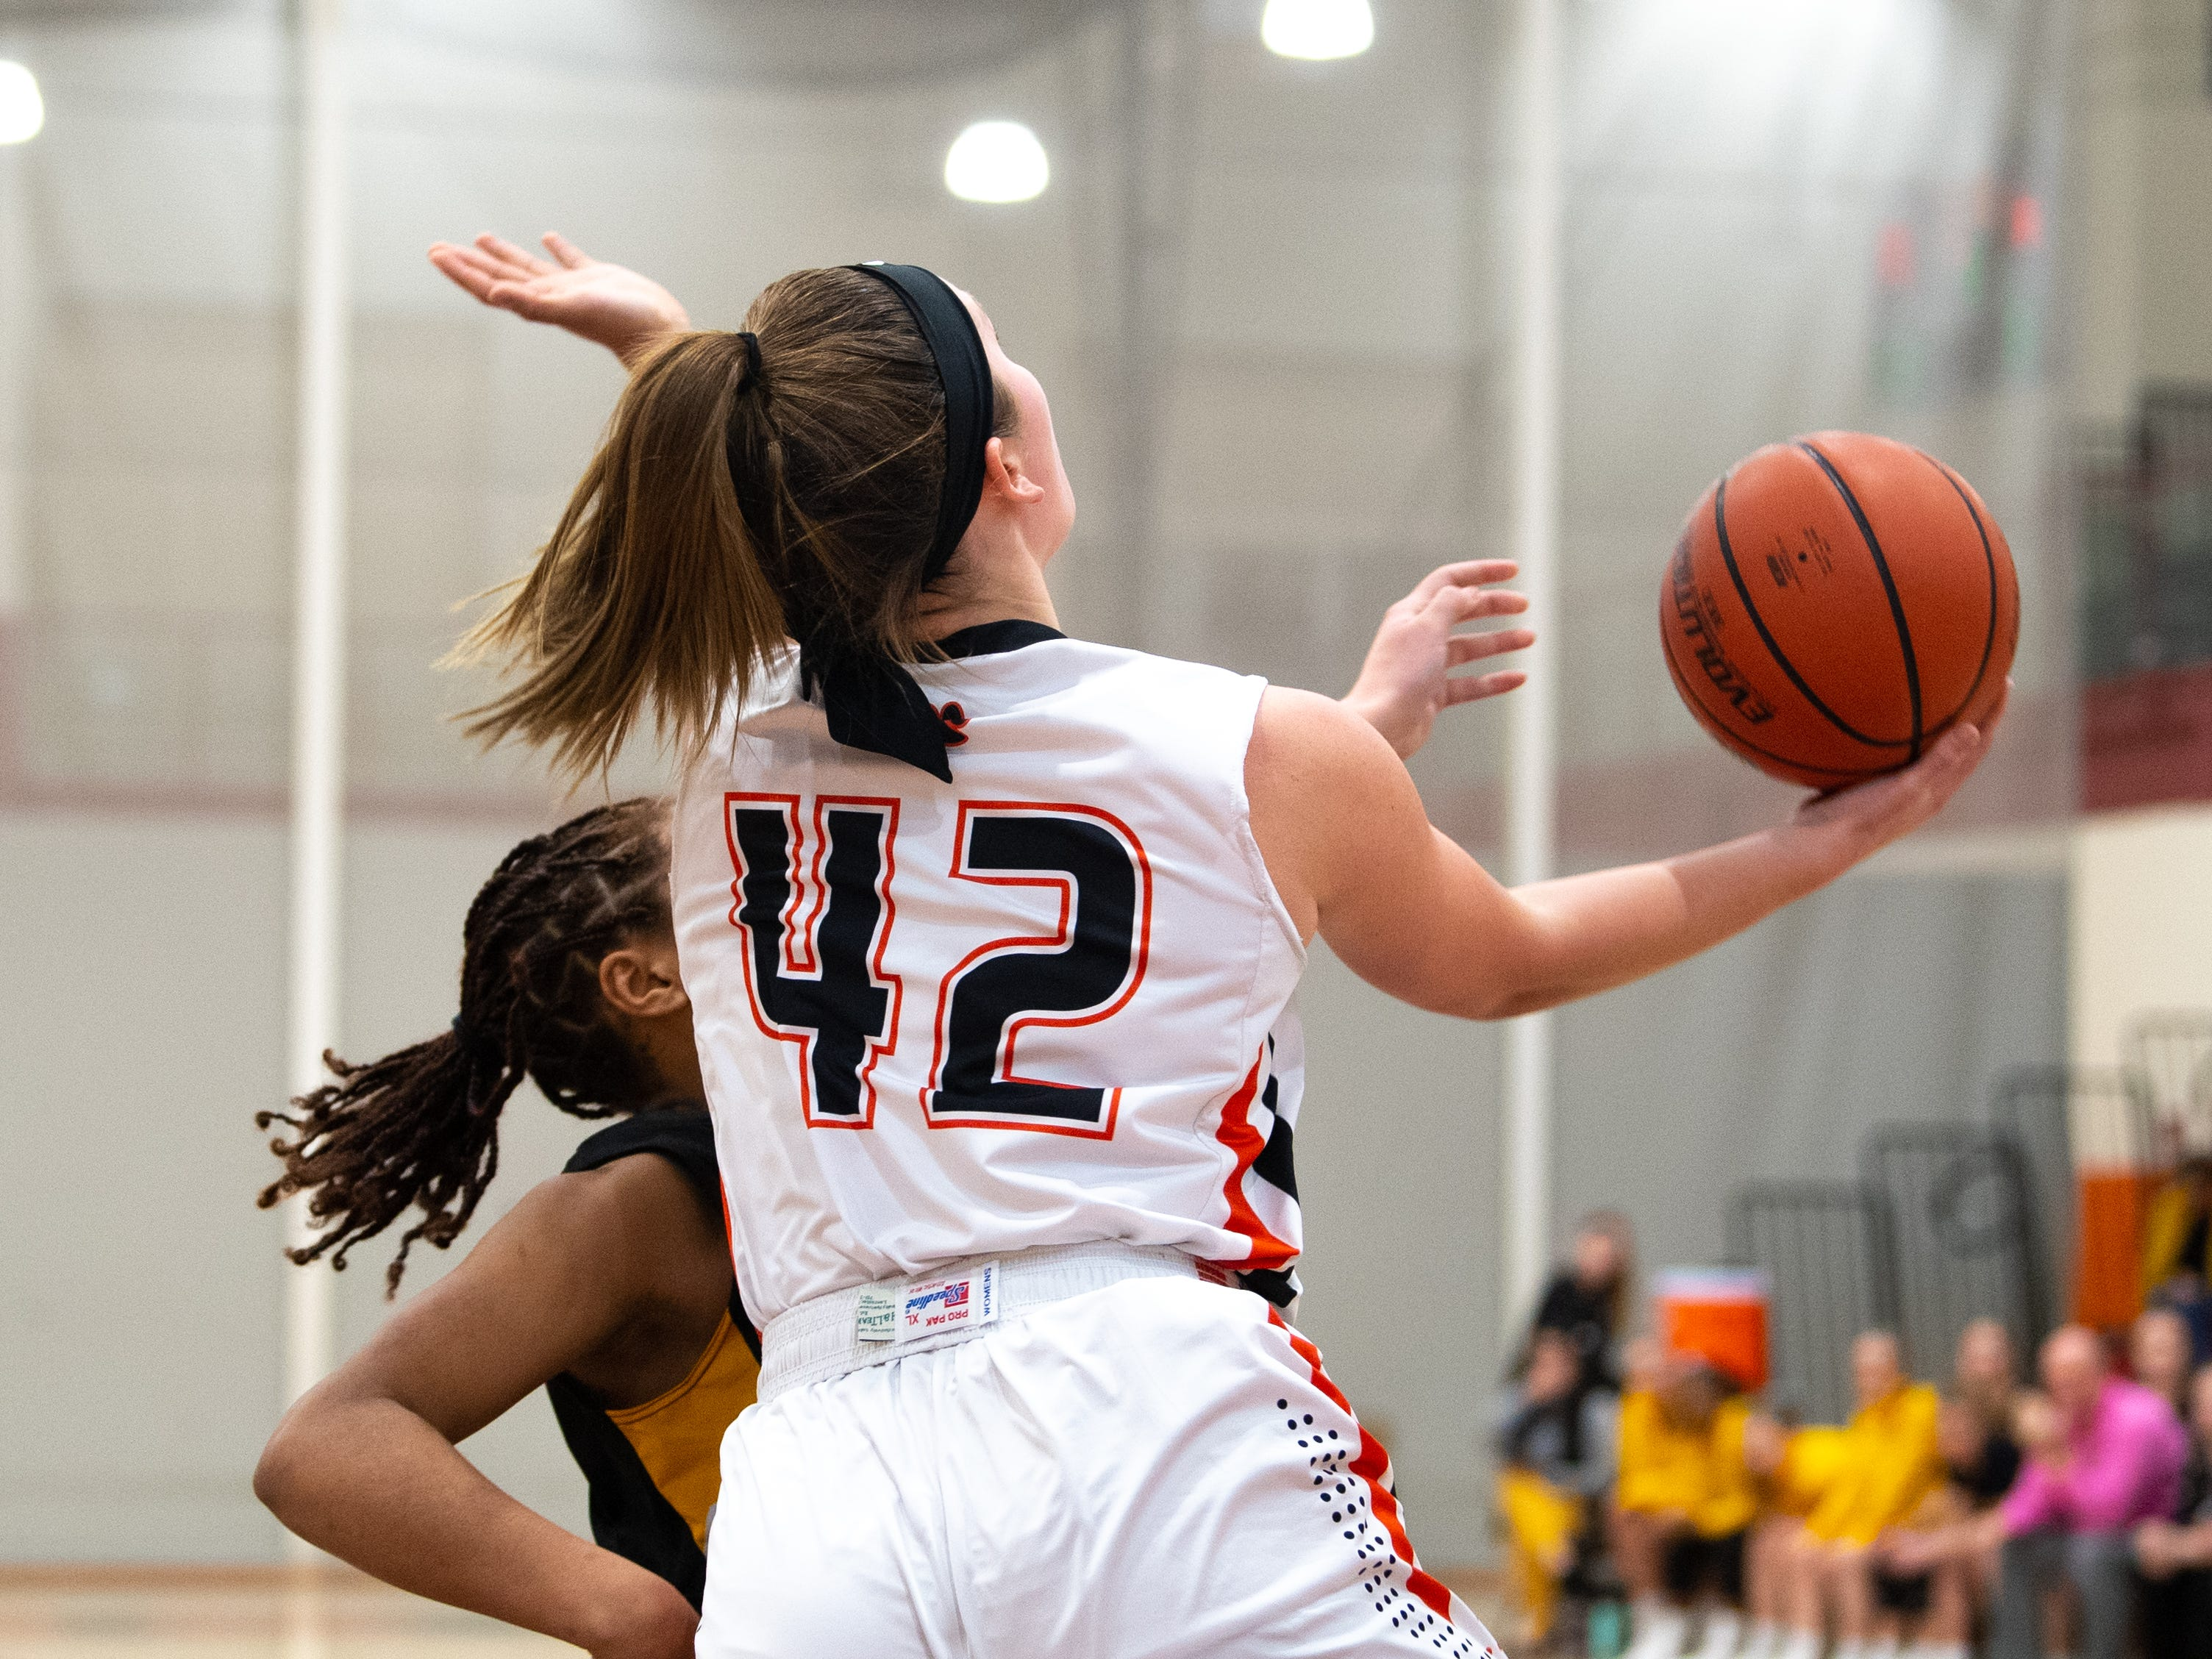 Emily Powell (42) goes up for the reverse lay up during the girls' basketball game between Central York and Red Lion at Central York, Tuesday, December 11, 2018. The Panthers defeated the Lions 40-38.